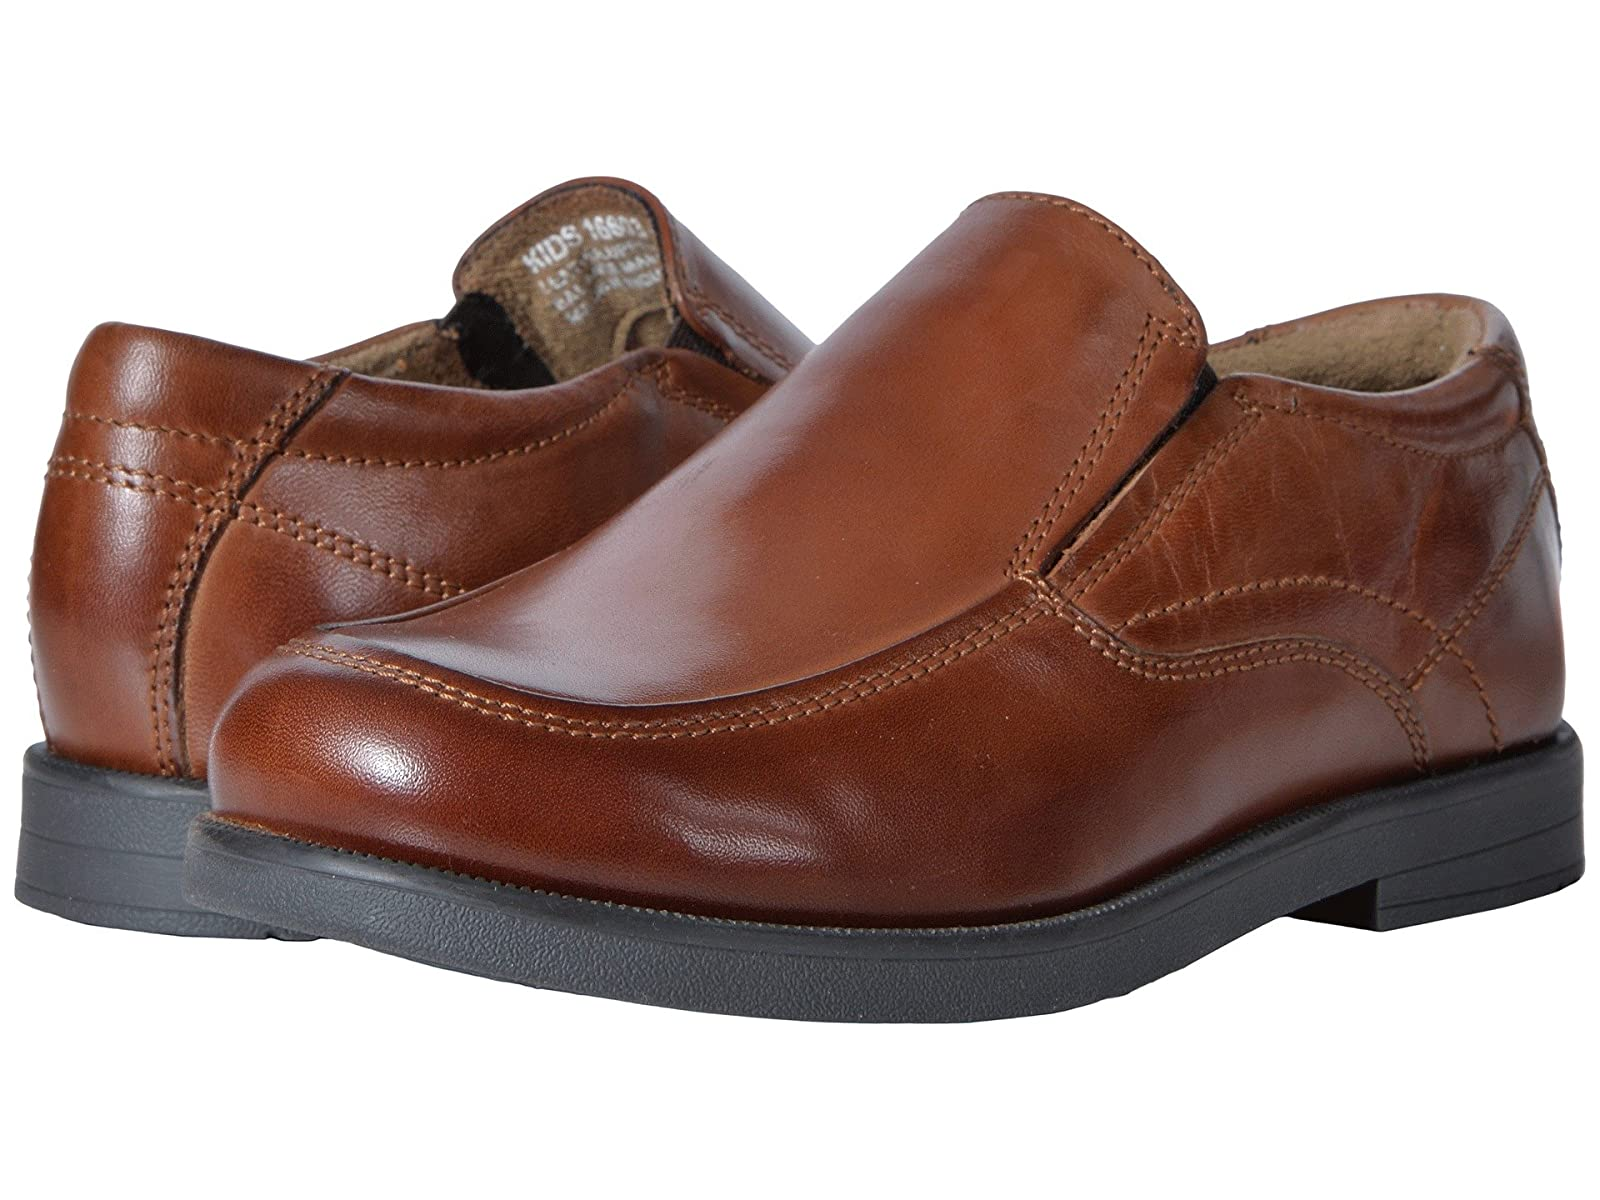 Florsheim Kids Midtown Moc Slip, Jr. (Toddler/Little Kid/Big Kid)Atmospheric grades have affordable shoes